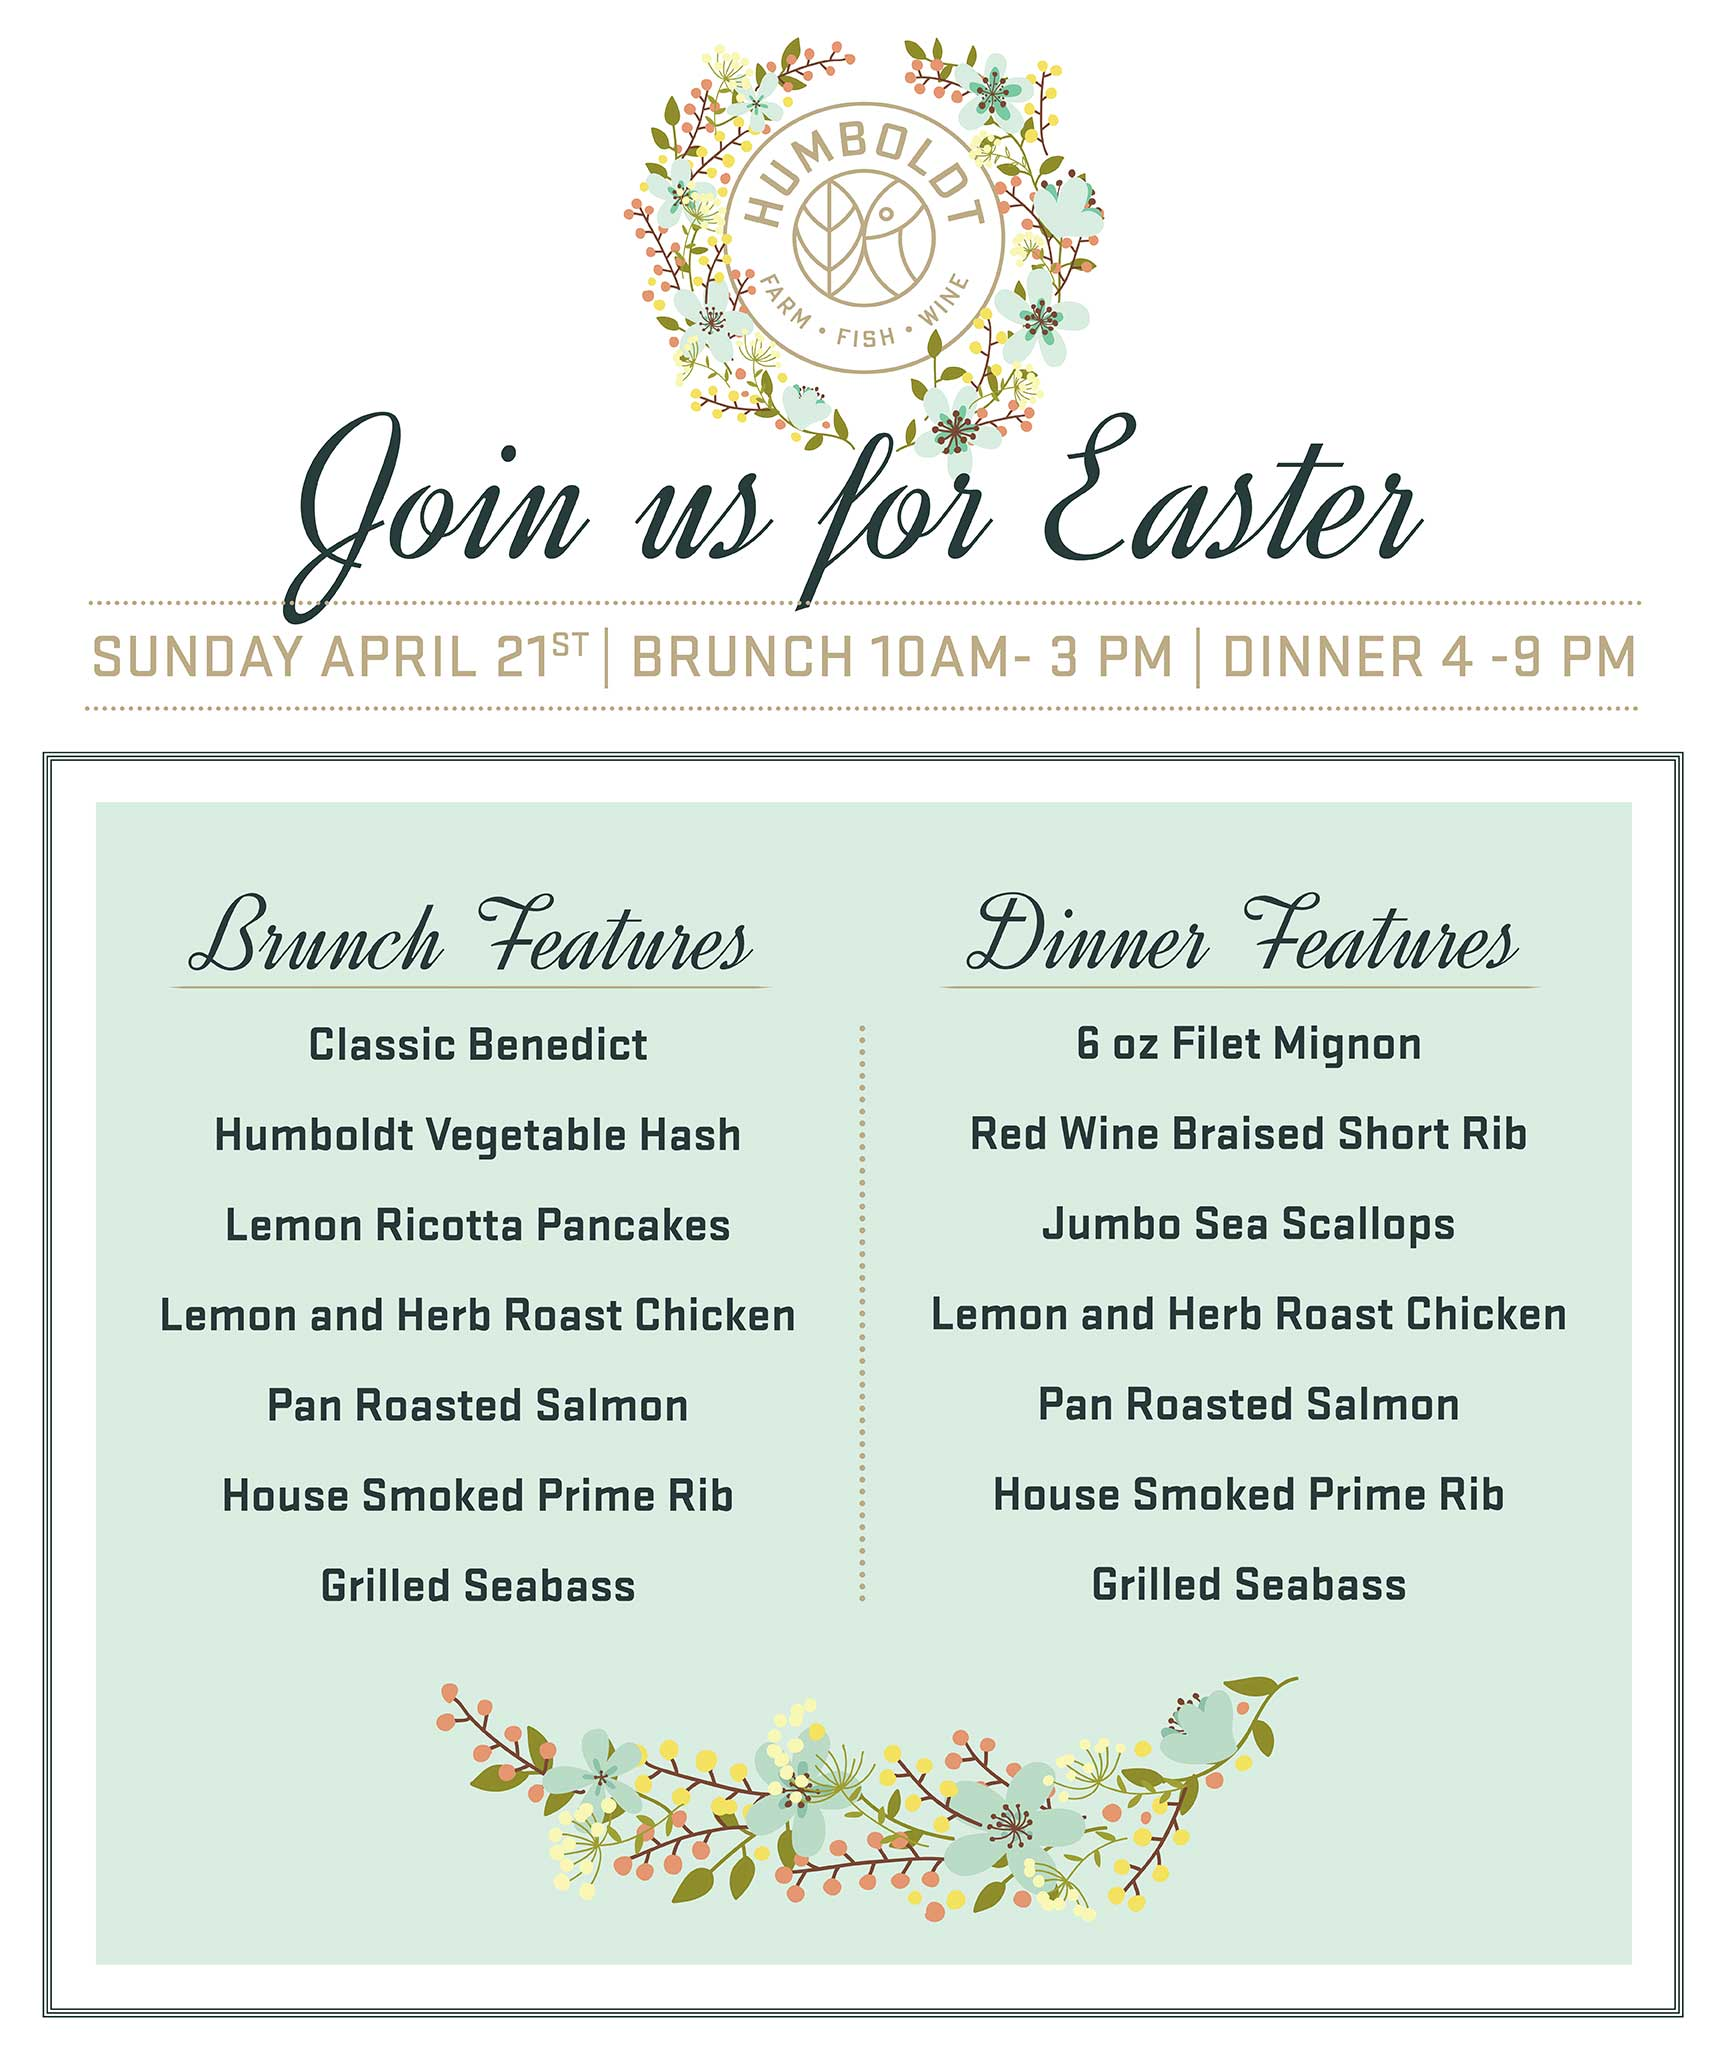 Humboldt Farm Fish Wine Denver Colorado Easter Brunch and Dinner